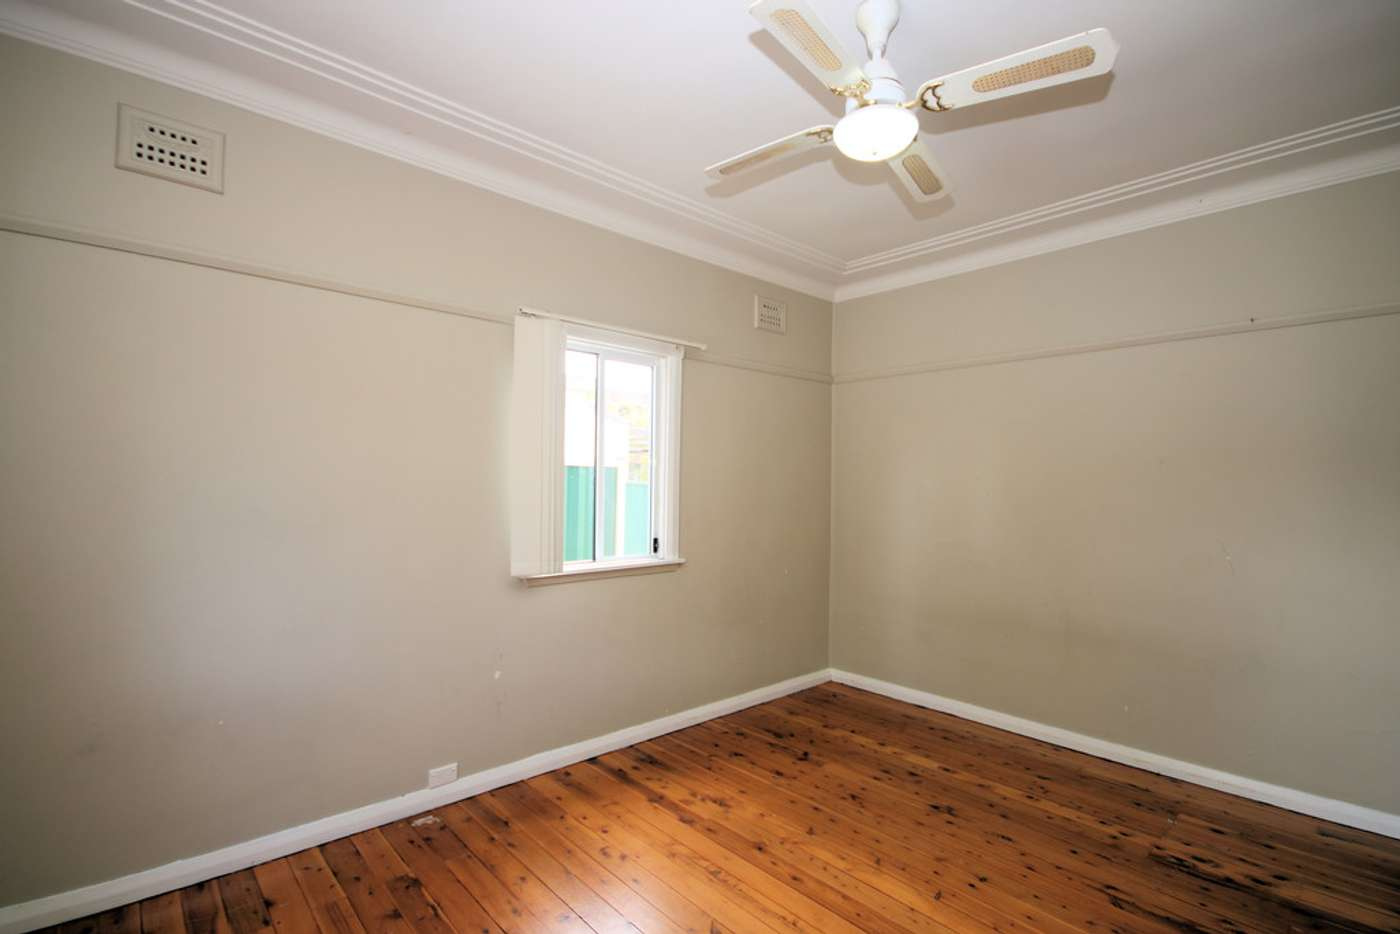 Sixth view of Homely house listing, 93 Beaconsfield Street, Silverwater NSW 2128